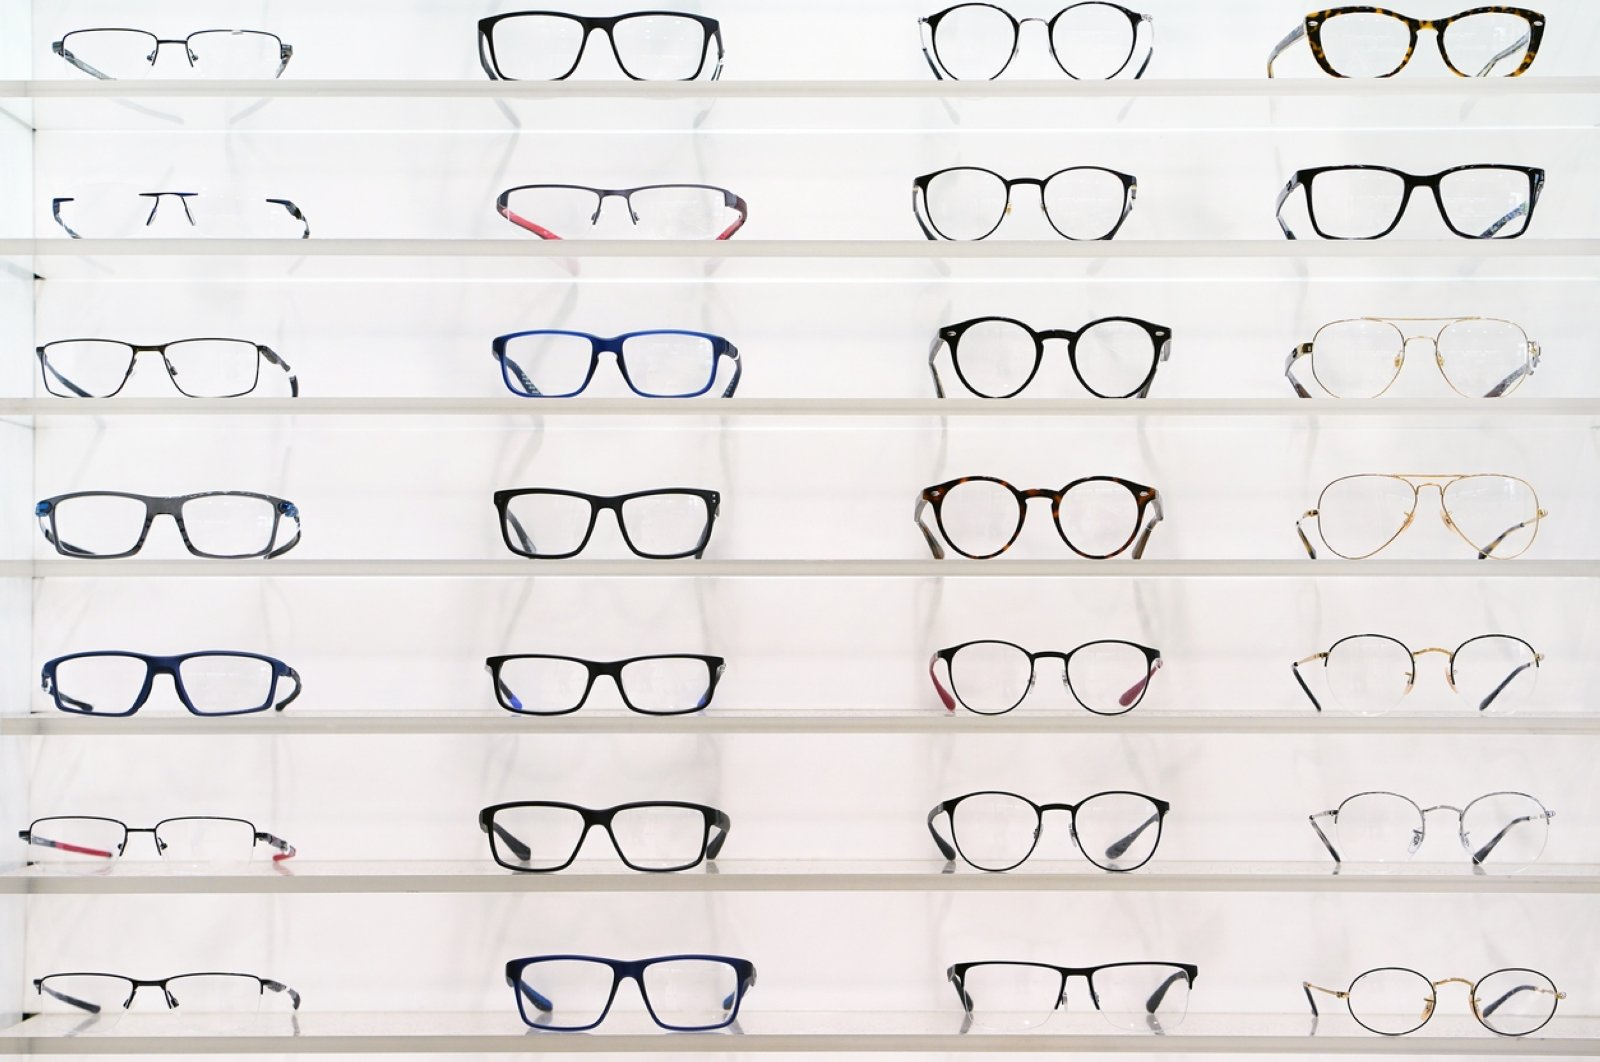 Display case with glasses in an optics store. (iStock Photo by Igor Vershinsky)